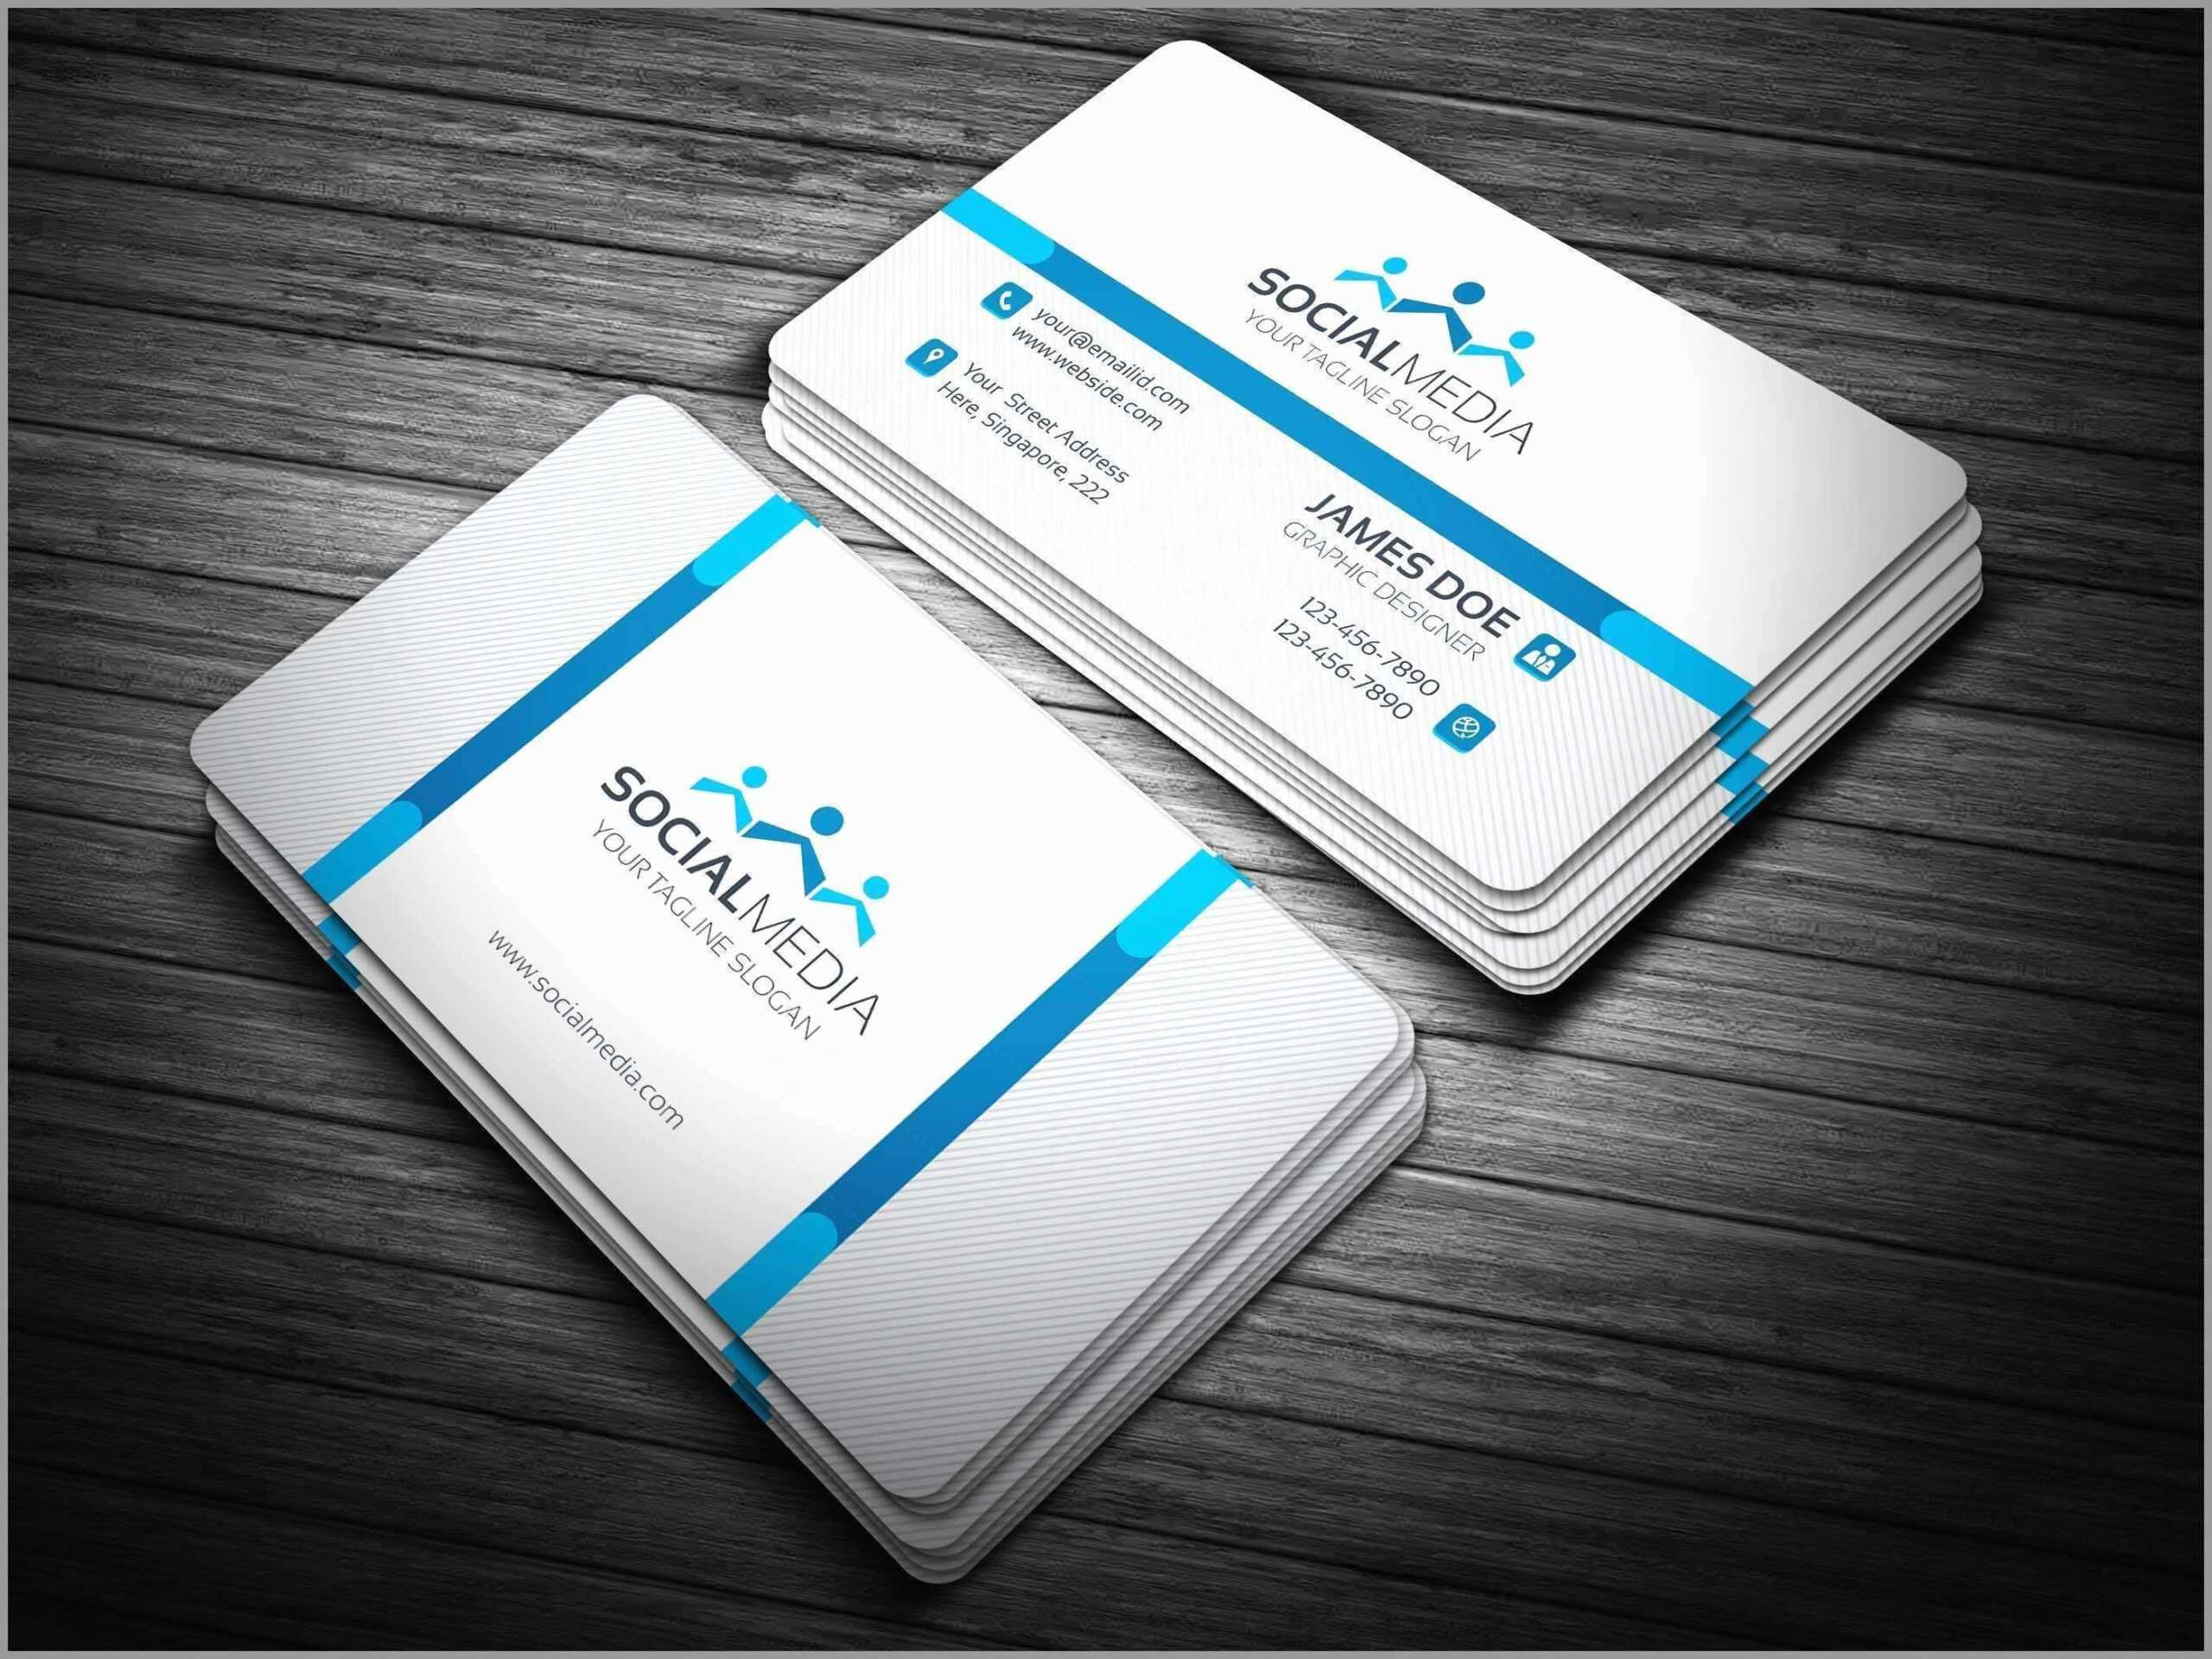 Esthetician Business Card Templates - Apocalomegaproductions Intended For Kinkos Business Card Template